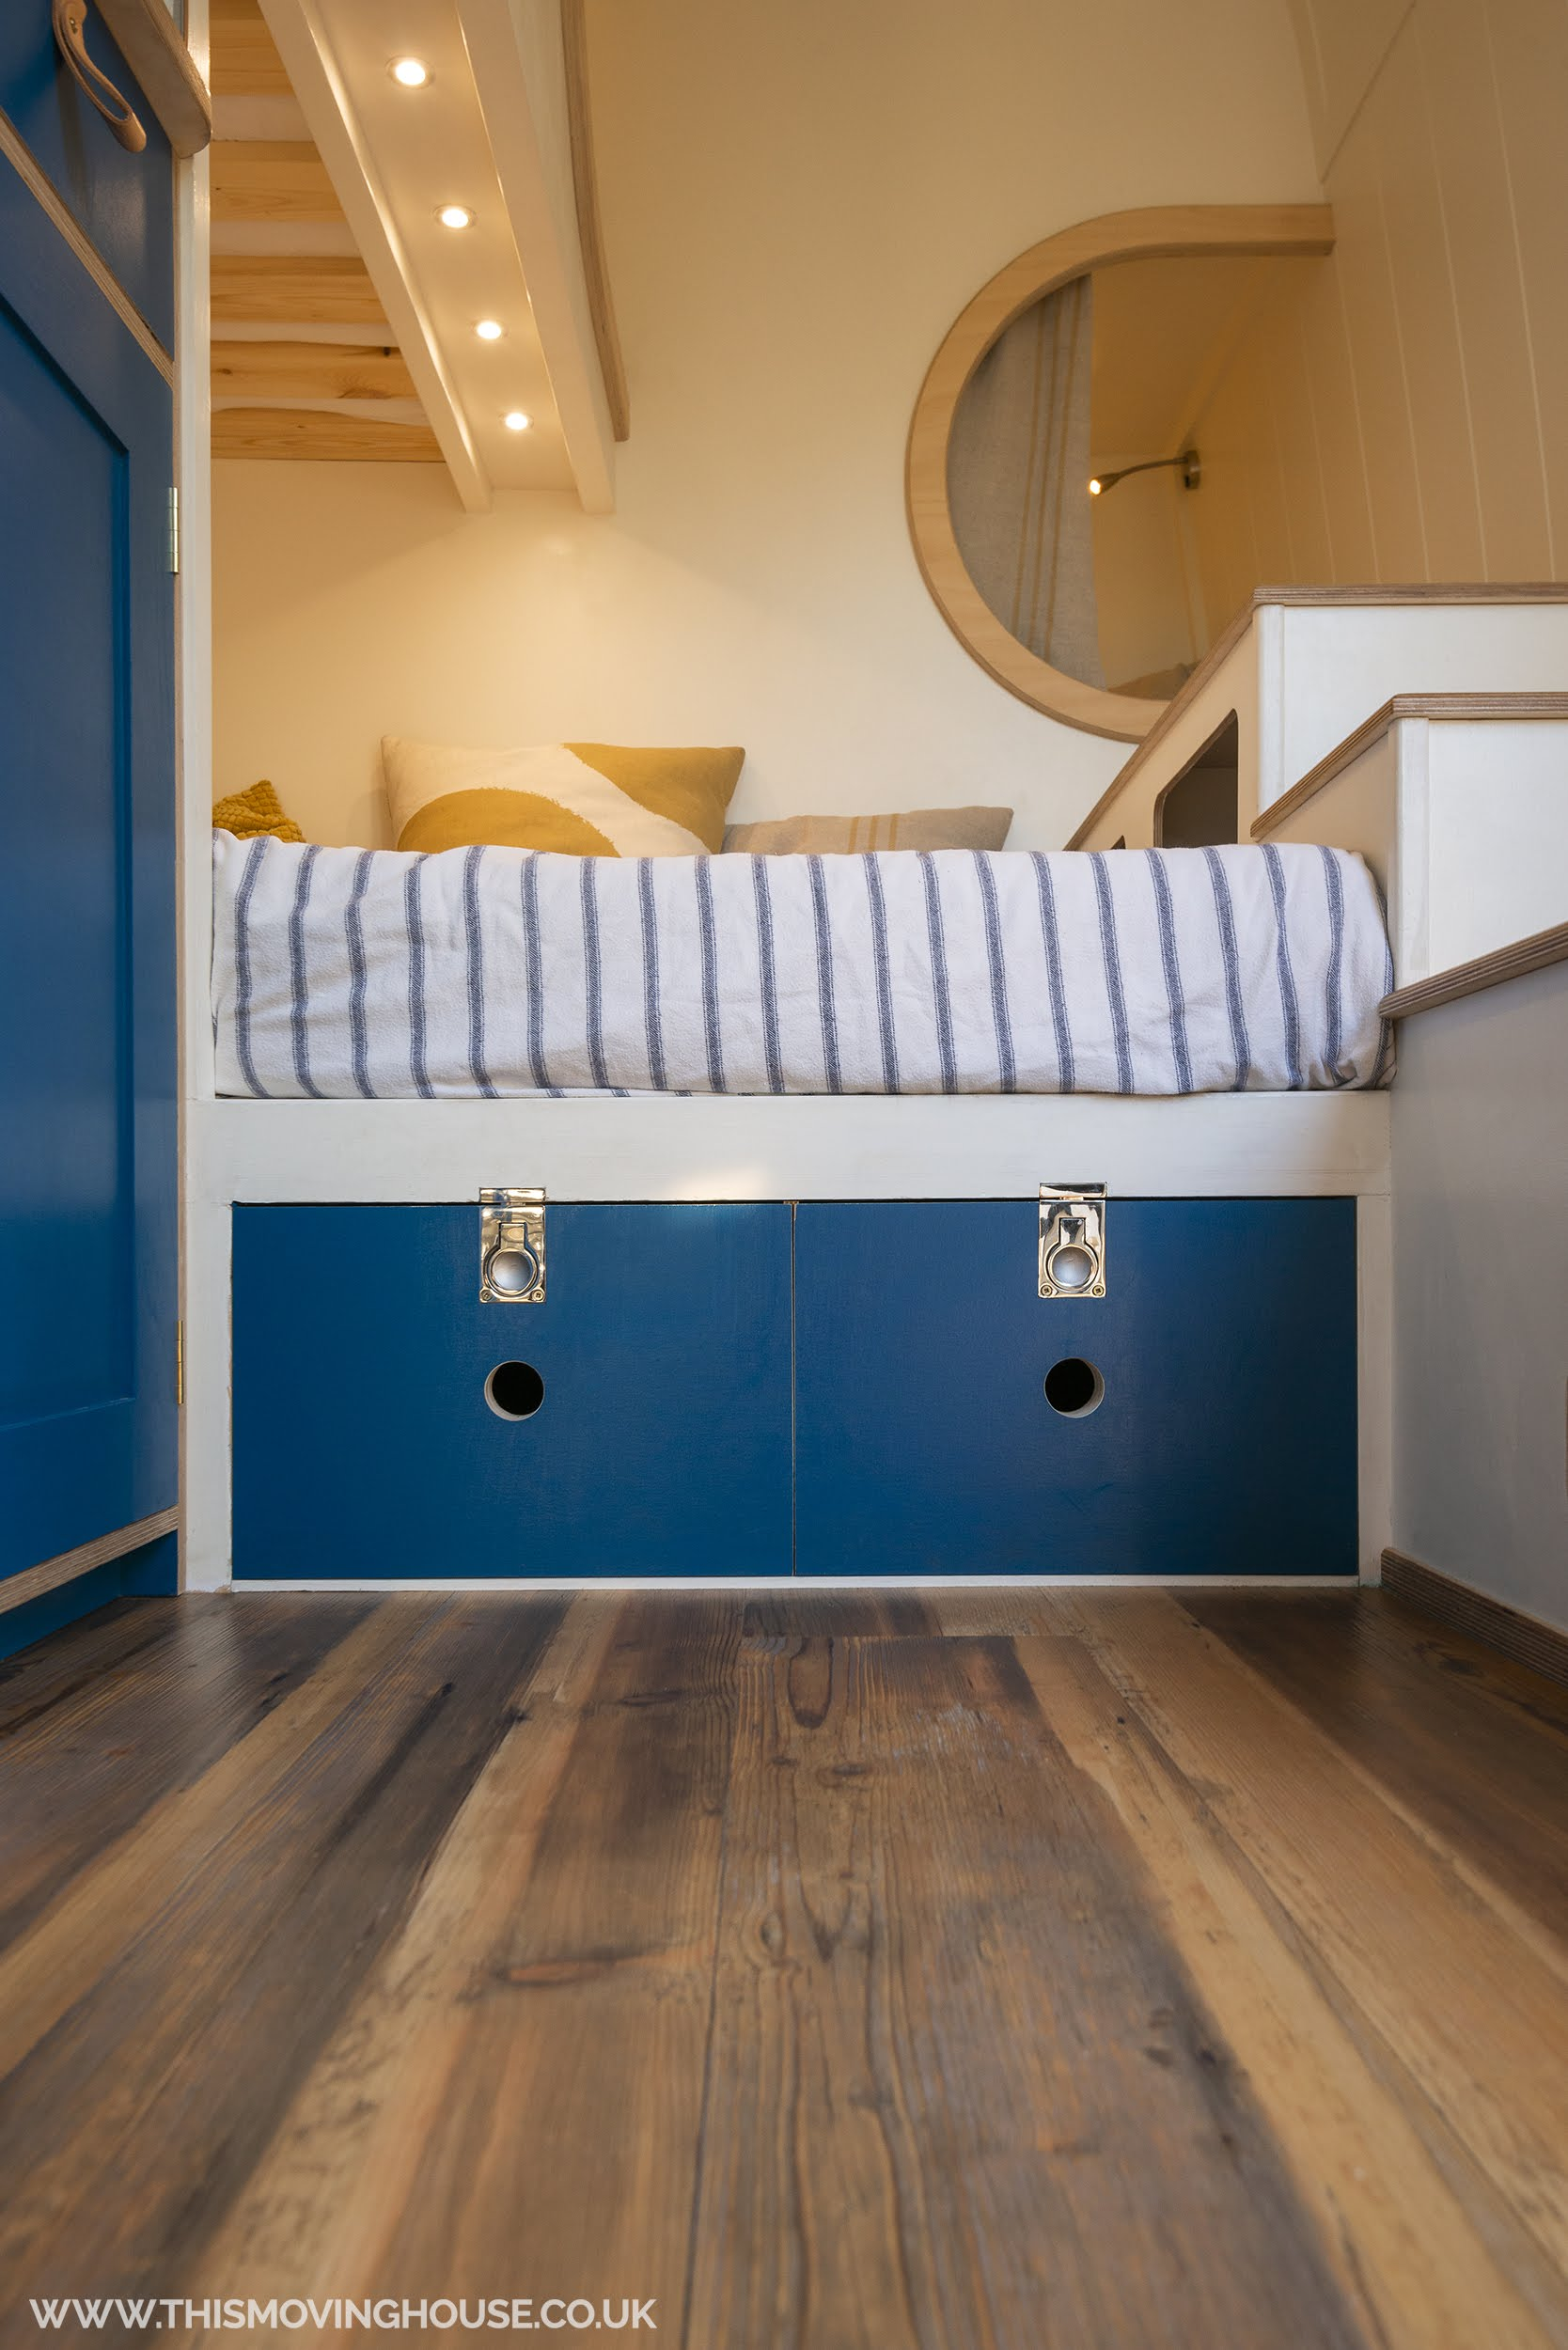 storage solutions in a cool family camper van